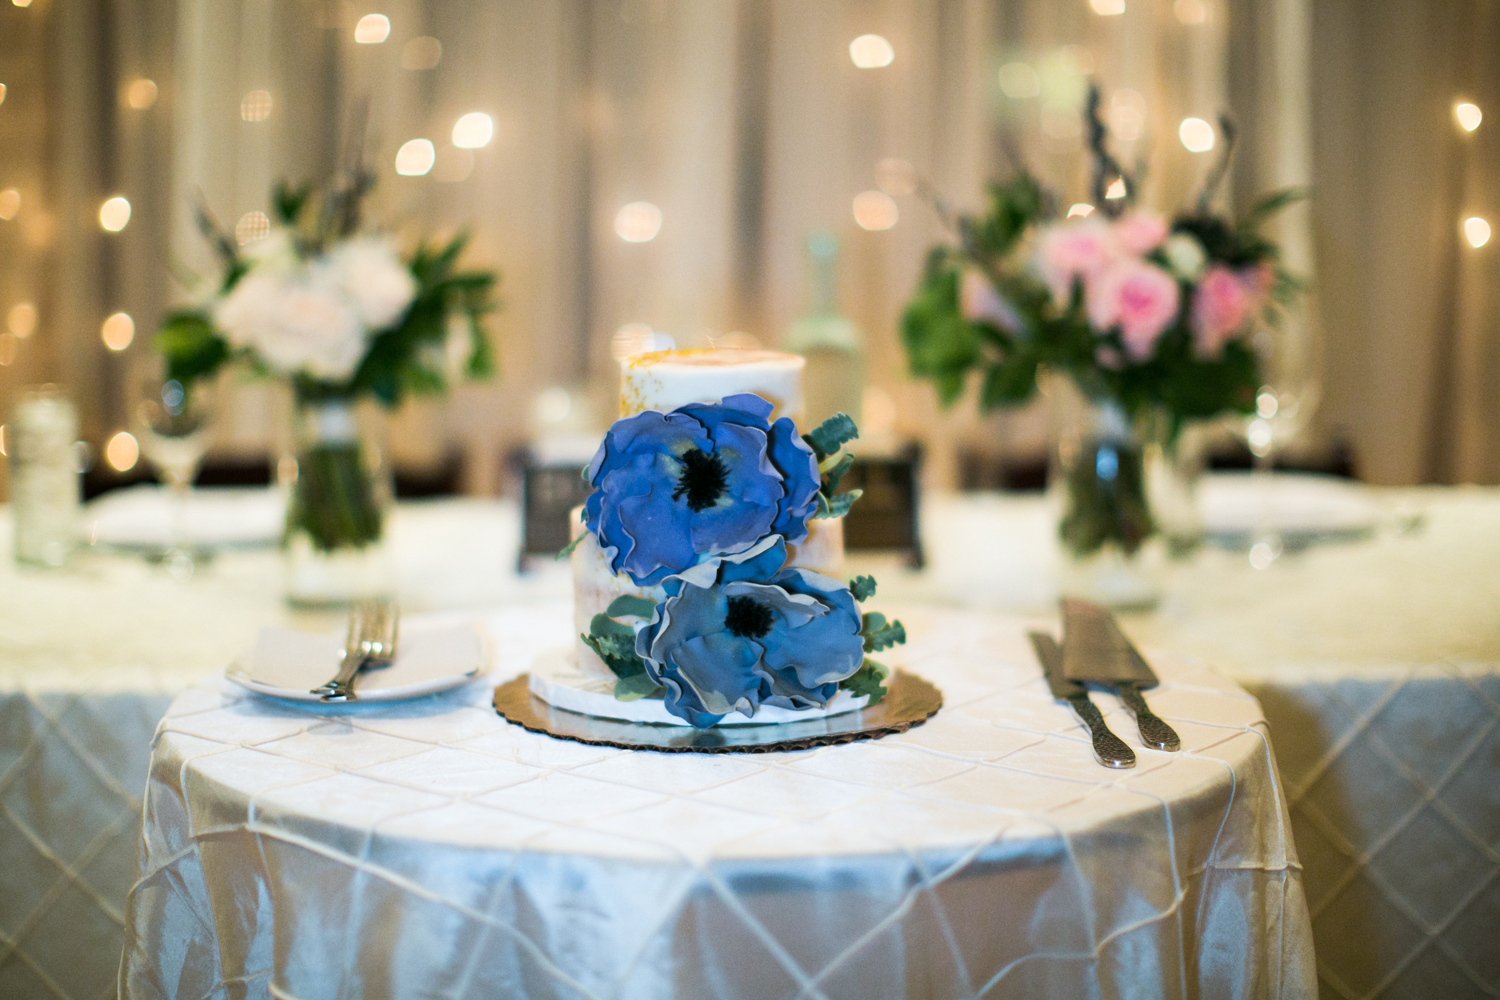 One Girl Cookies wedding cakes | photographed by Amber Marlow, NYC